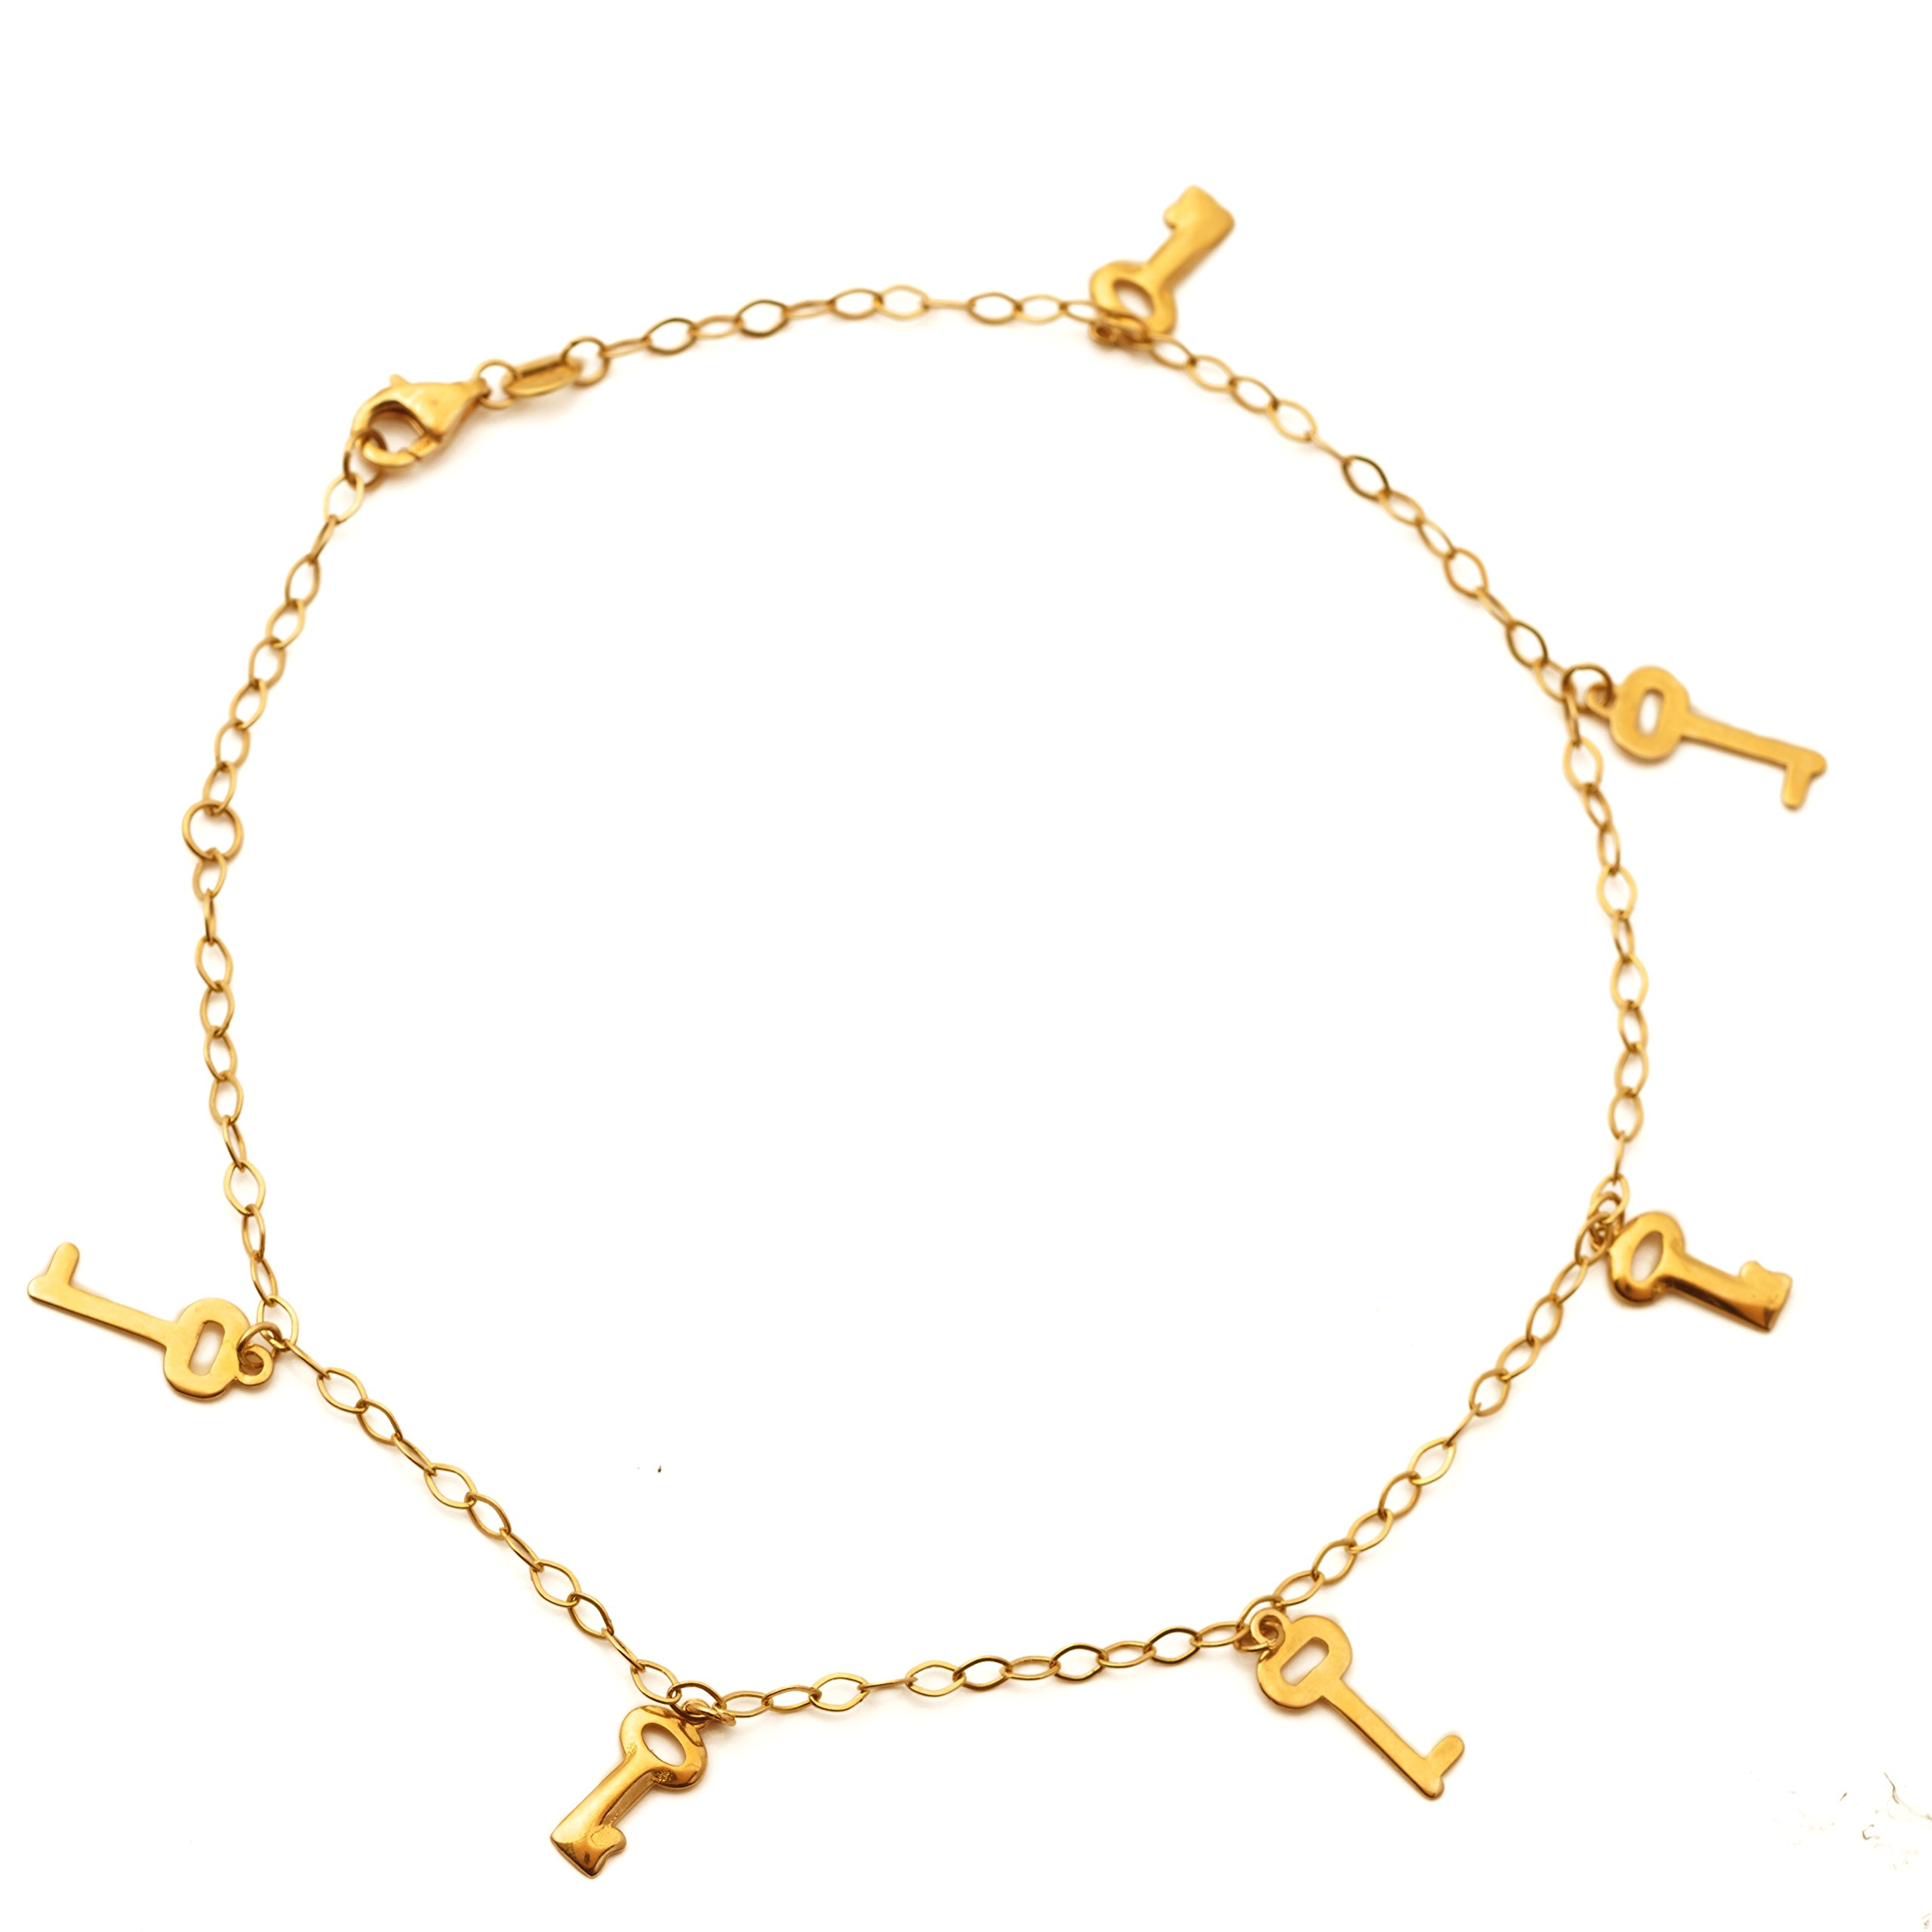 LoveBling 10K Yellow Gold 2mm Diamond Cut Rolo Chain with 6 Key Charms Anklet Adjustable 9'' to 10'' (#39)